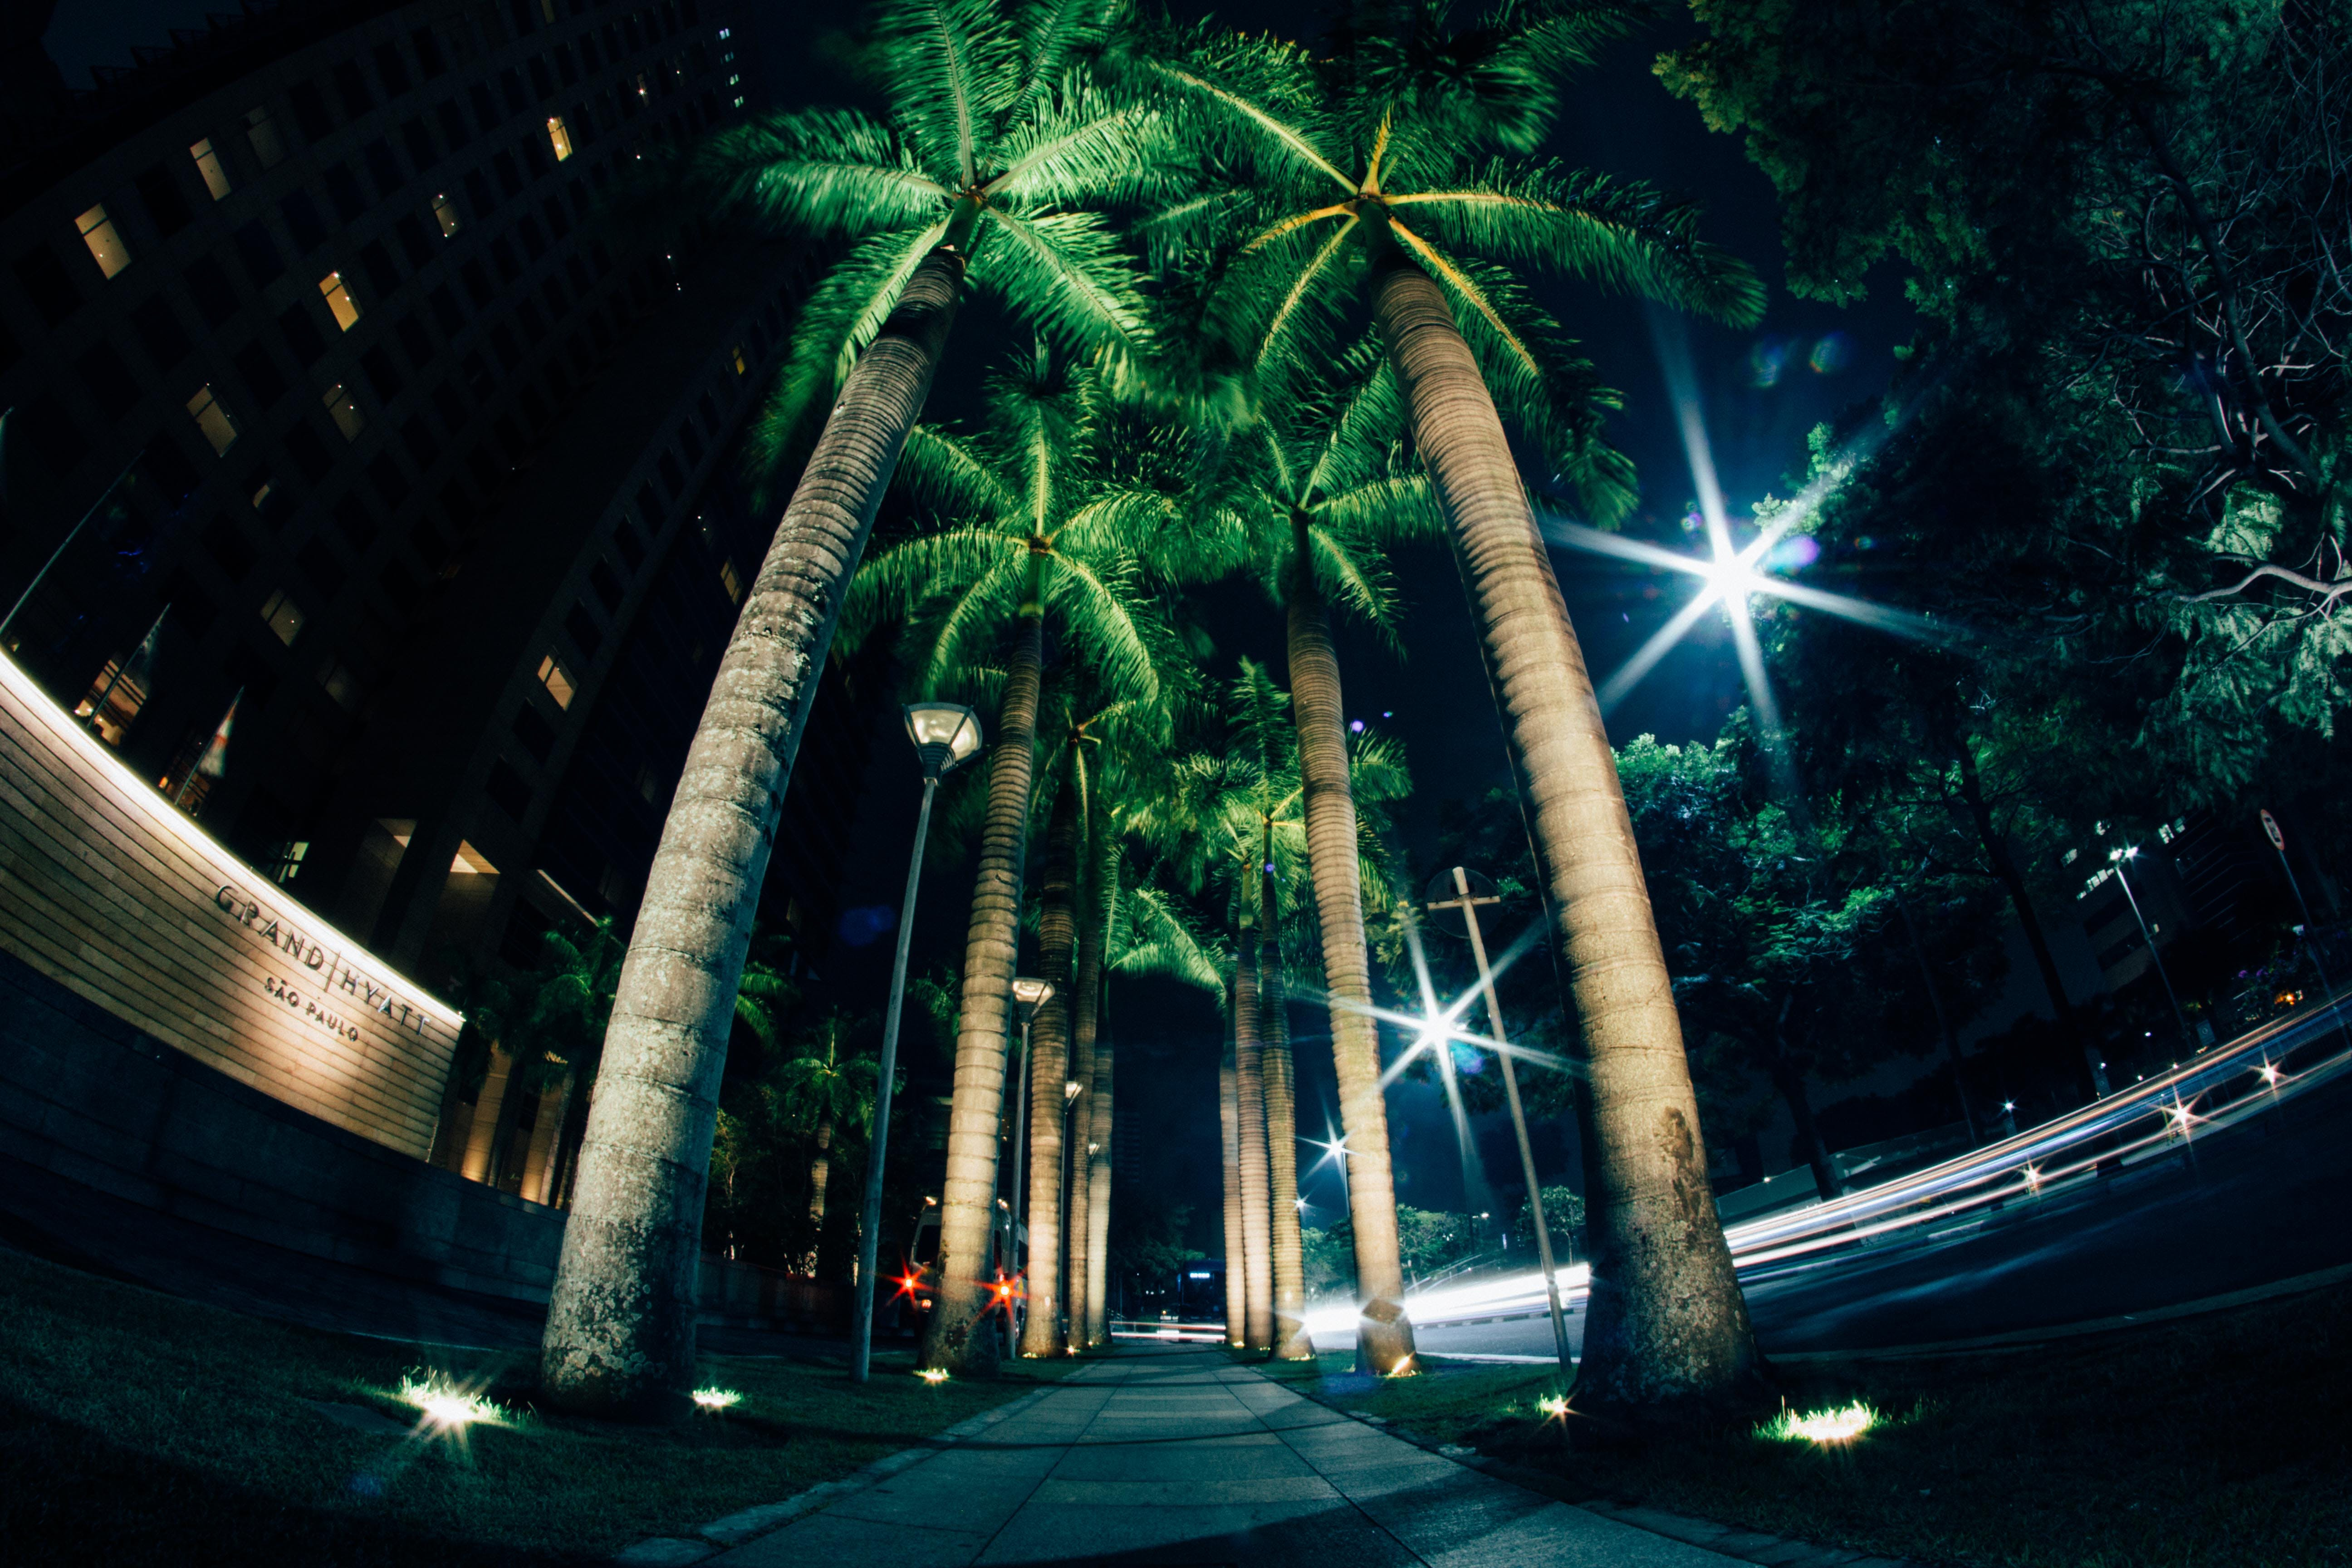 Green Palm Trees on Road during Nighttime